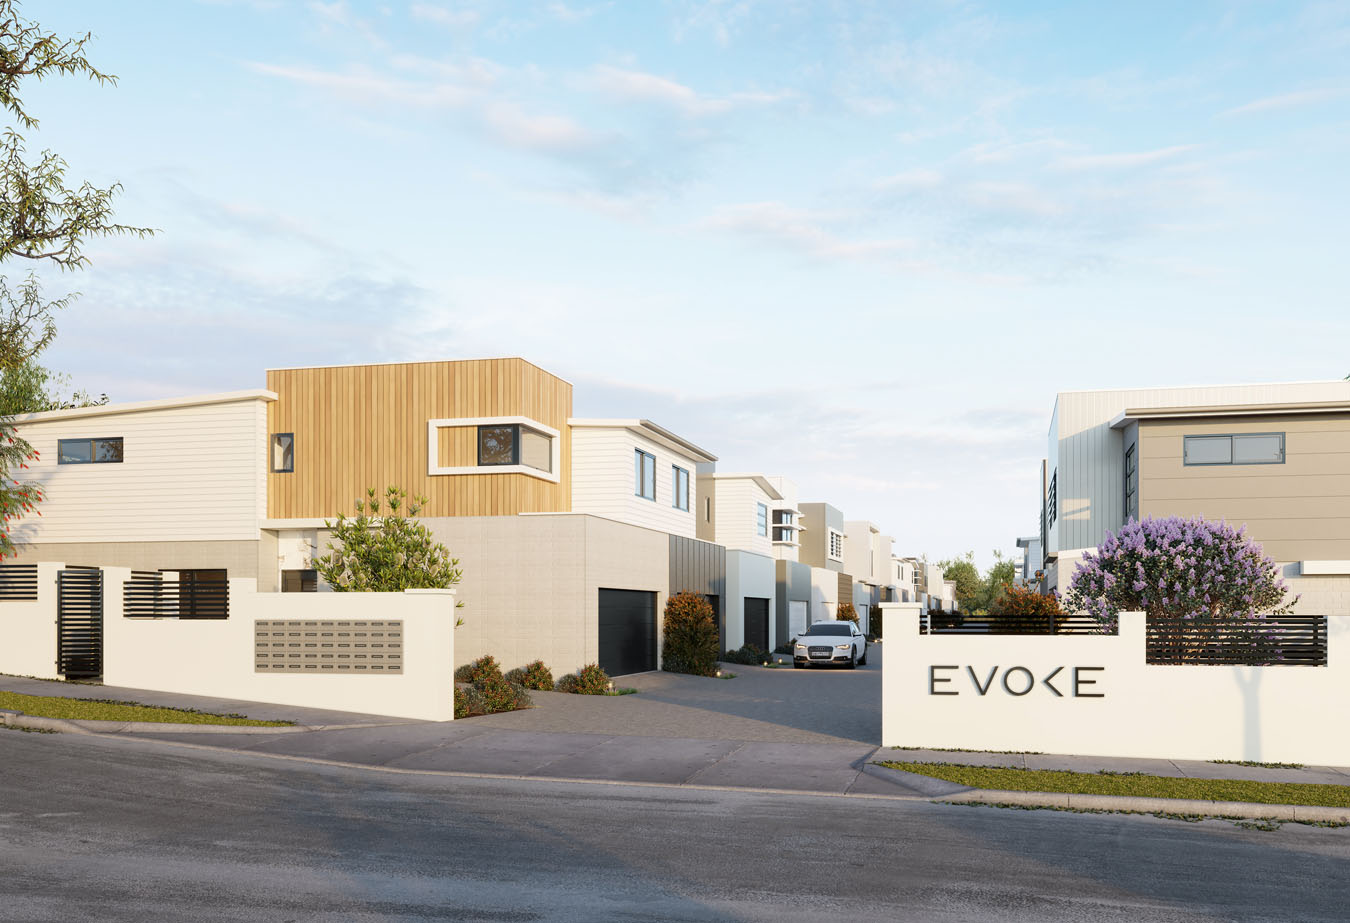 Brisbane Townhouse 4 Bedroom Evoke McDowall - External render